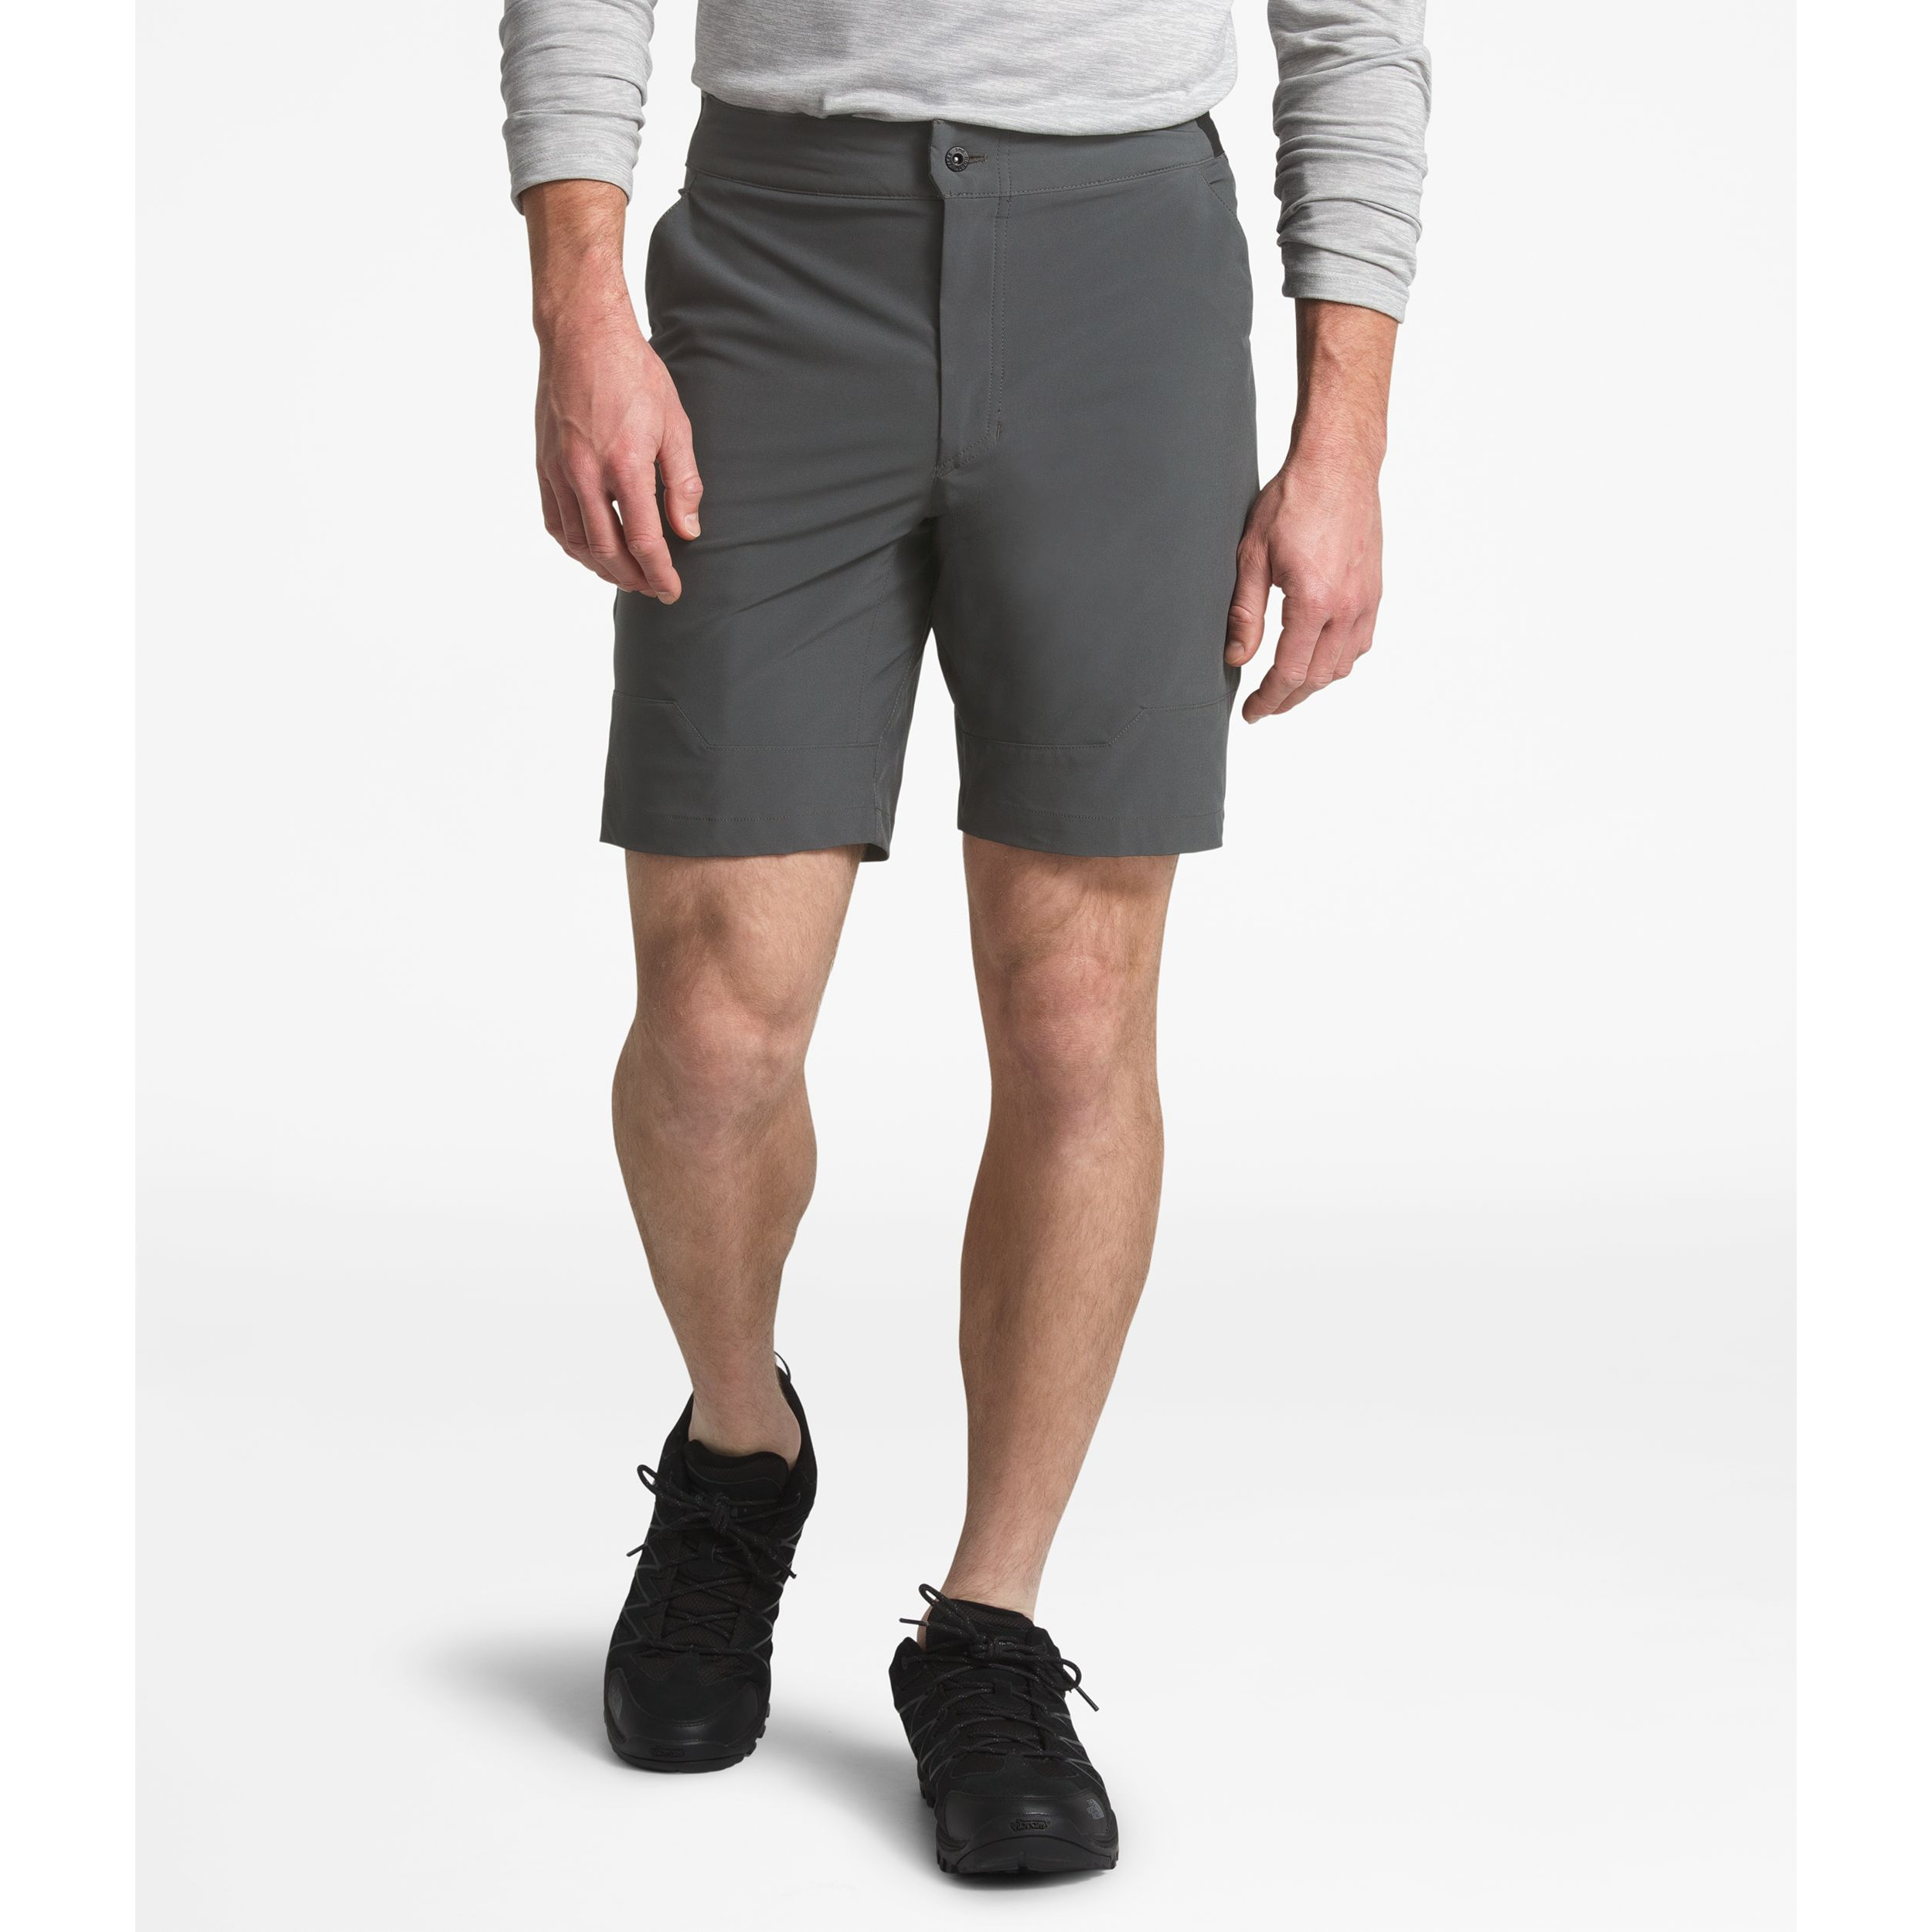 Paramount Active Short - Men's